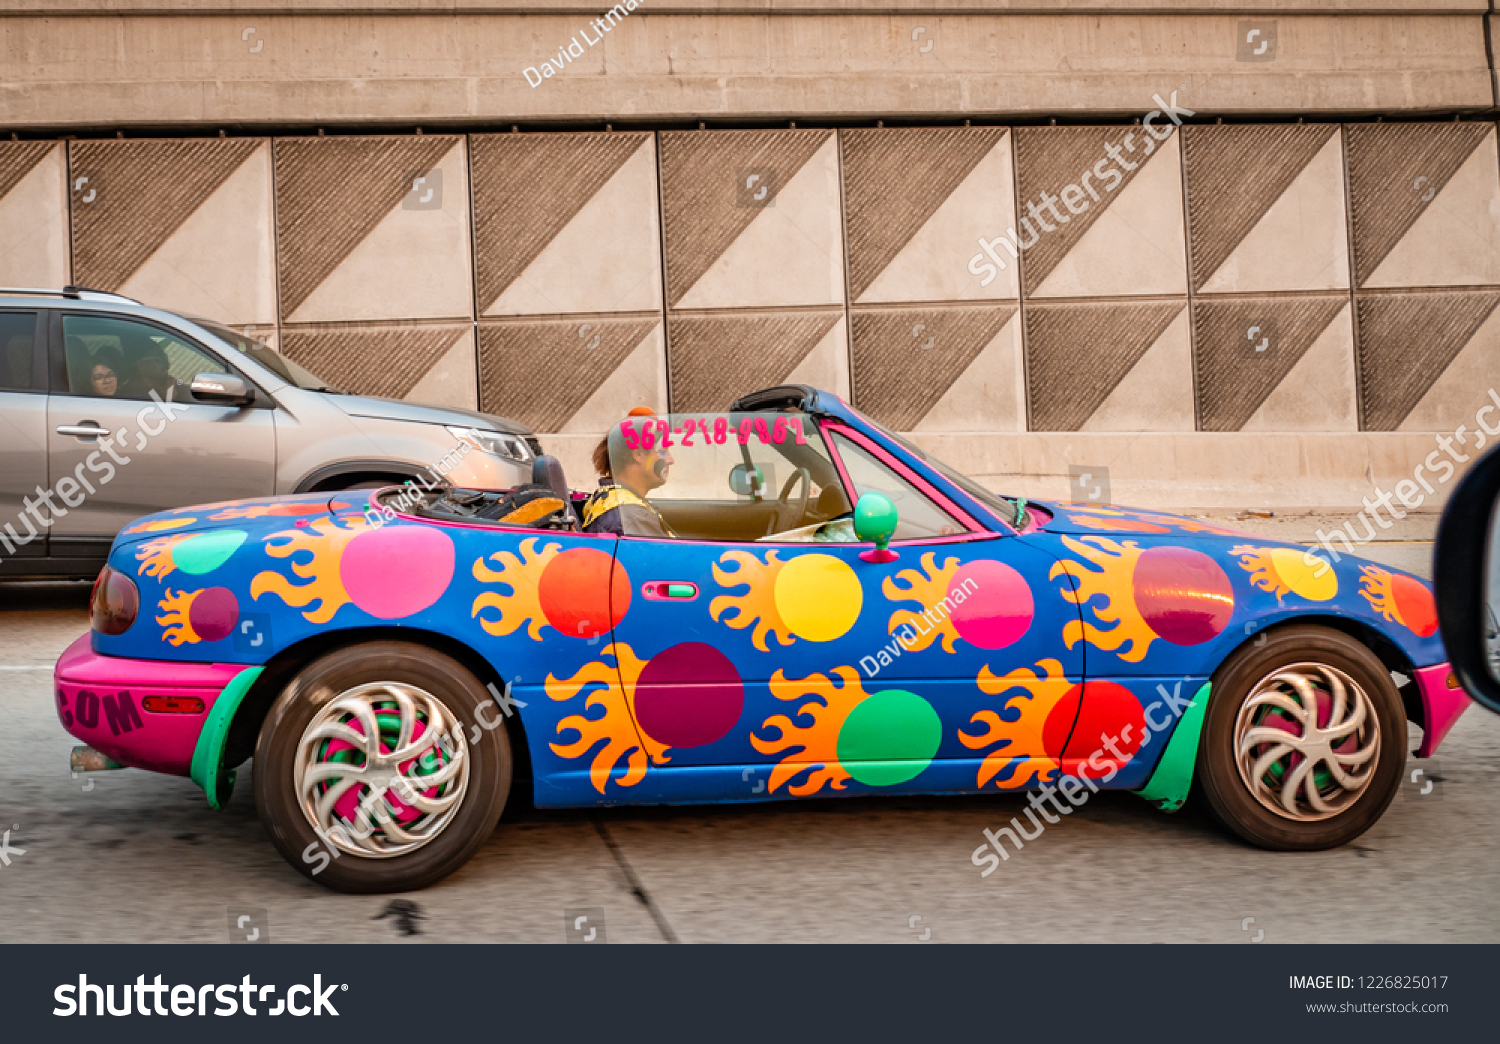 "Los Angeles, California - November 10, 2018: The ""California Clown"" drives a colorful decorated sports car to events such as birthday parties, company picnics, grand openings, preschools and day cares"